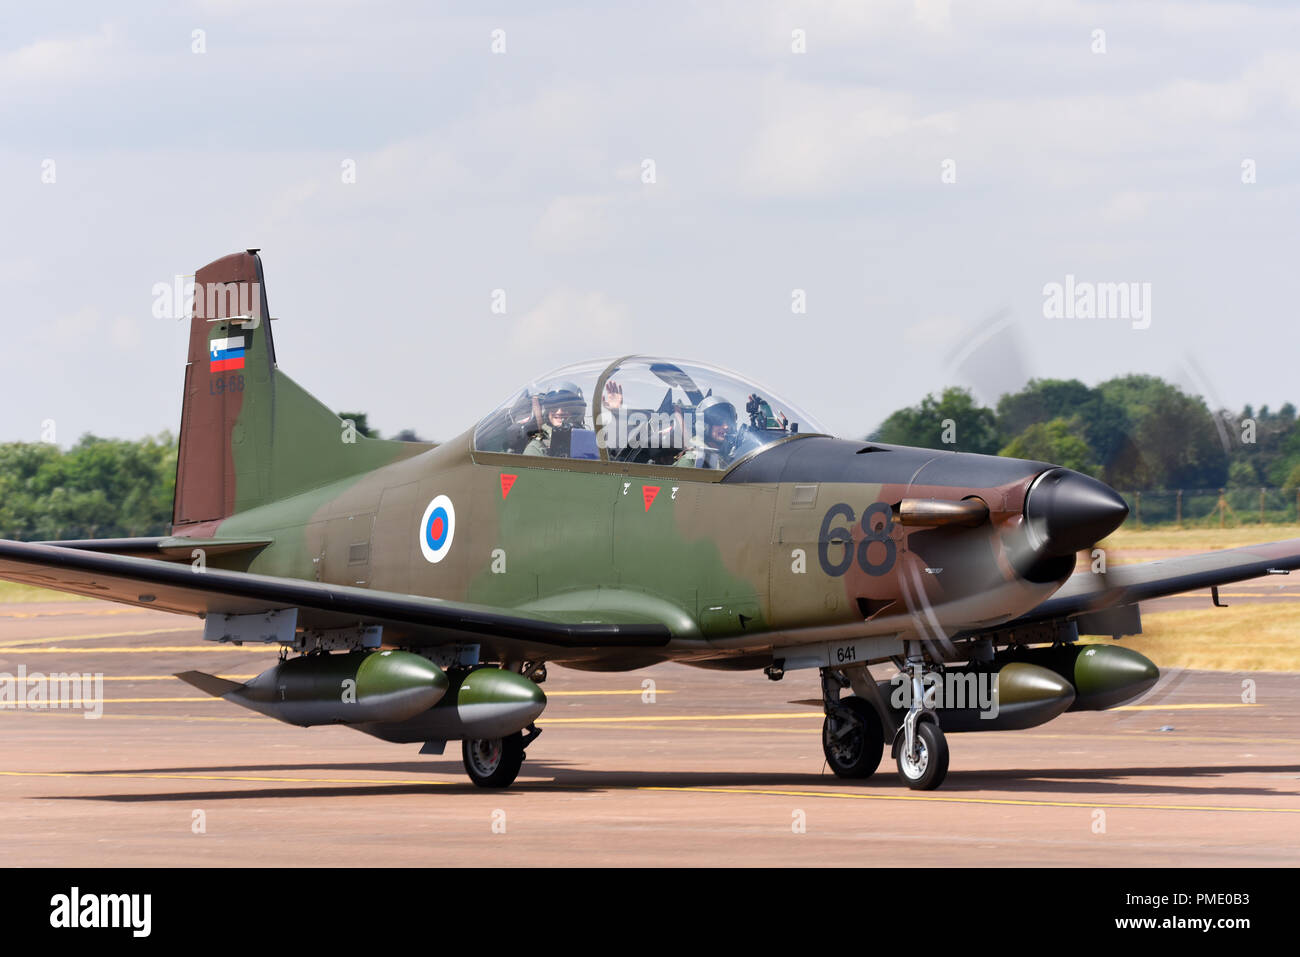 Slovenian Air Force and Air Defence Pilatus PC-9M Hudournik at the Royal International Air Tattoo, RIAT, RAF Fairford. PC-9 plane - Stock Image